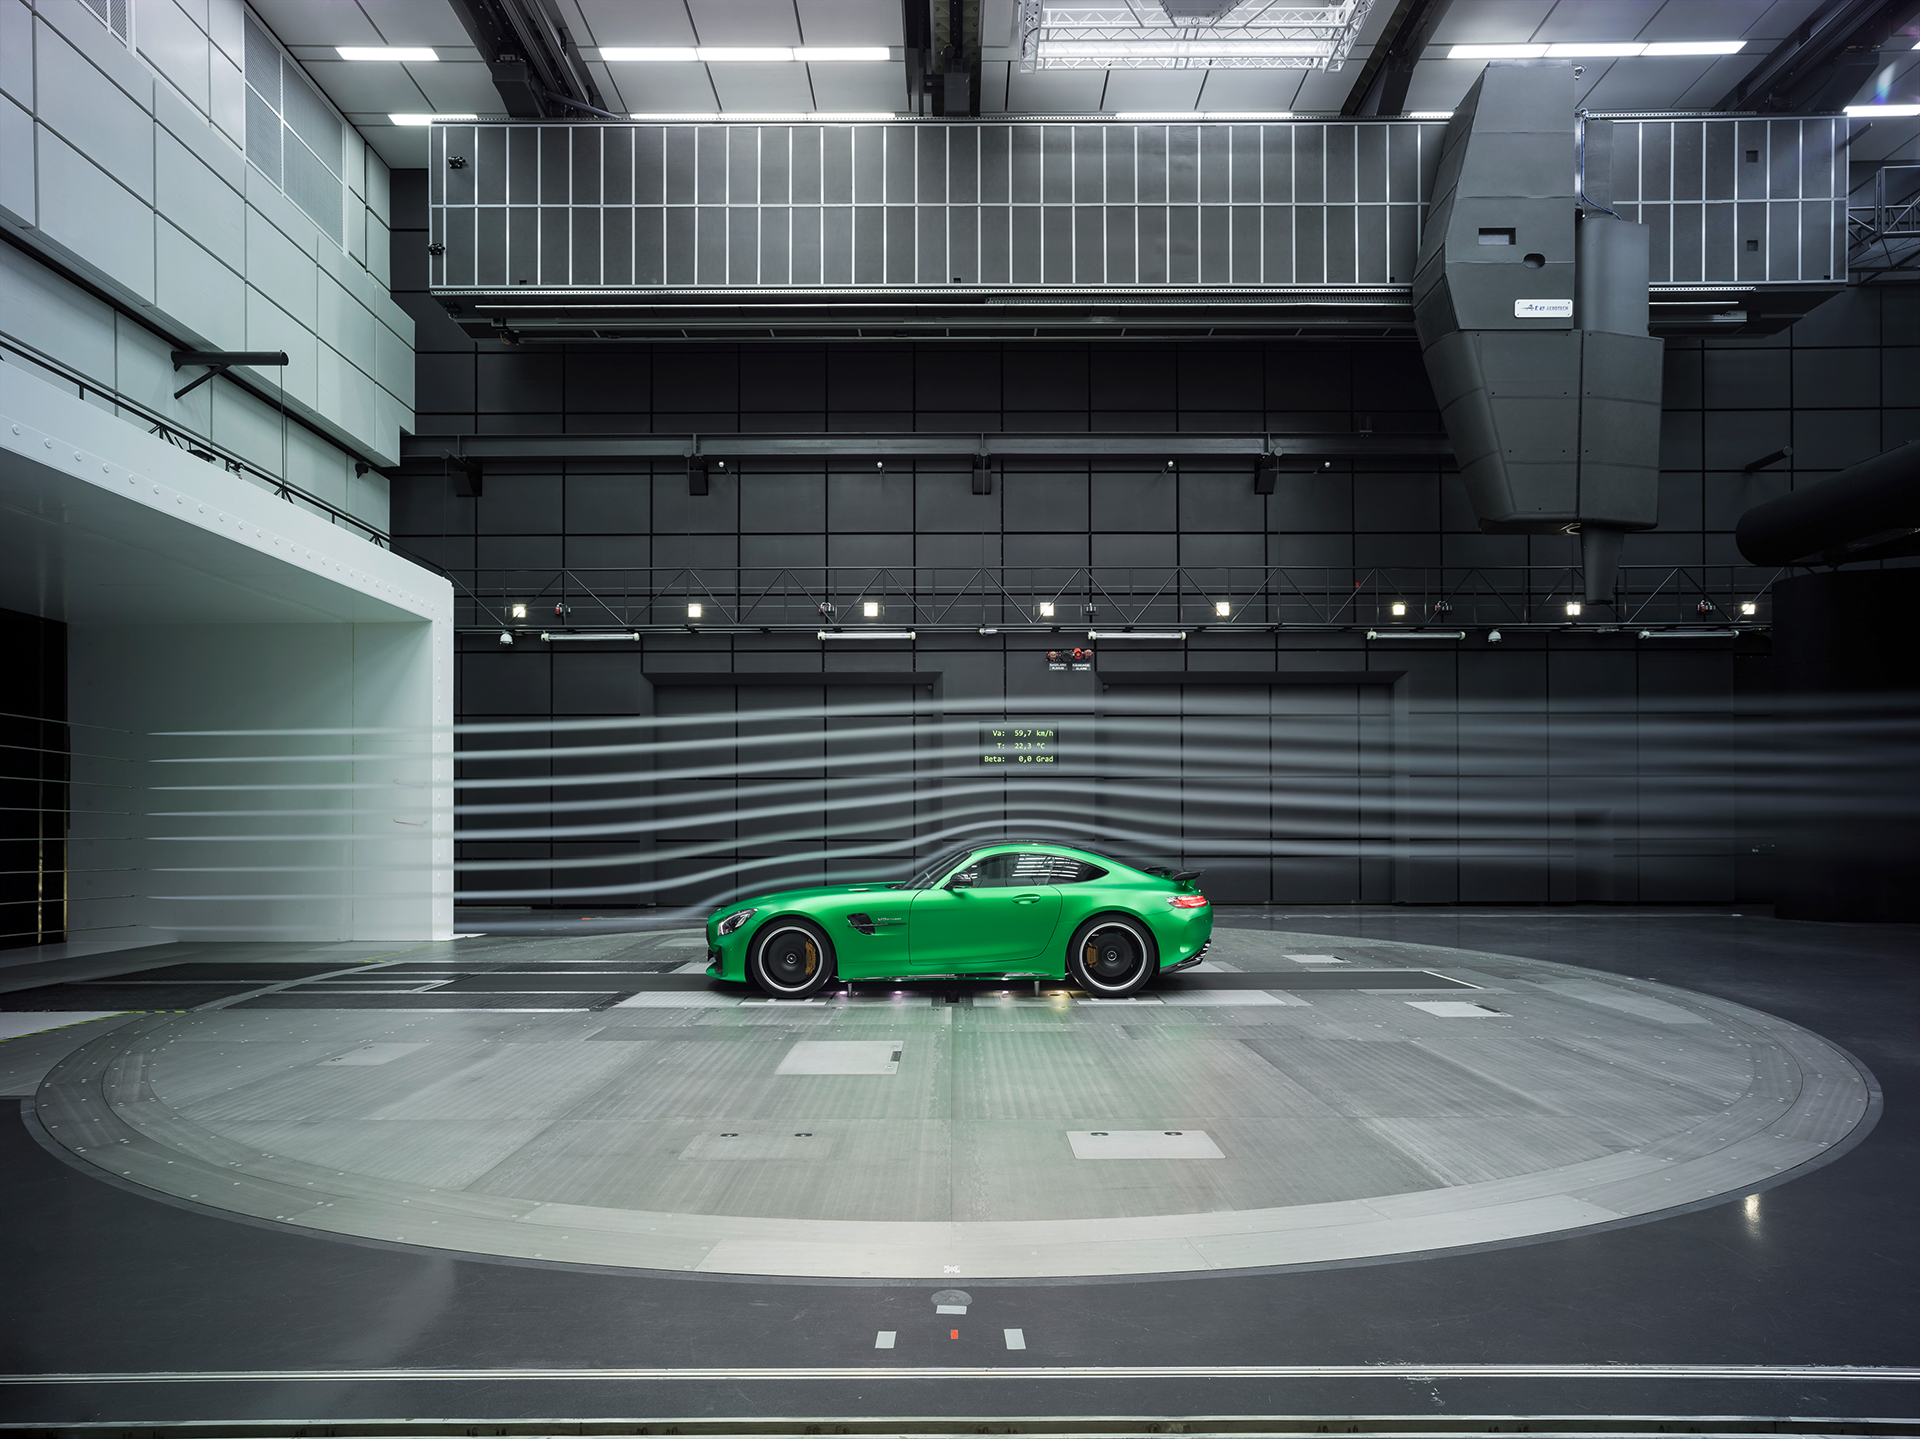 Mercedes-AMG GT R - 2016 - side-face / profil - aerodynamic